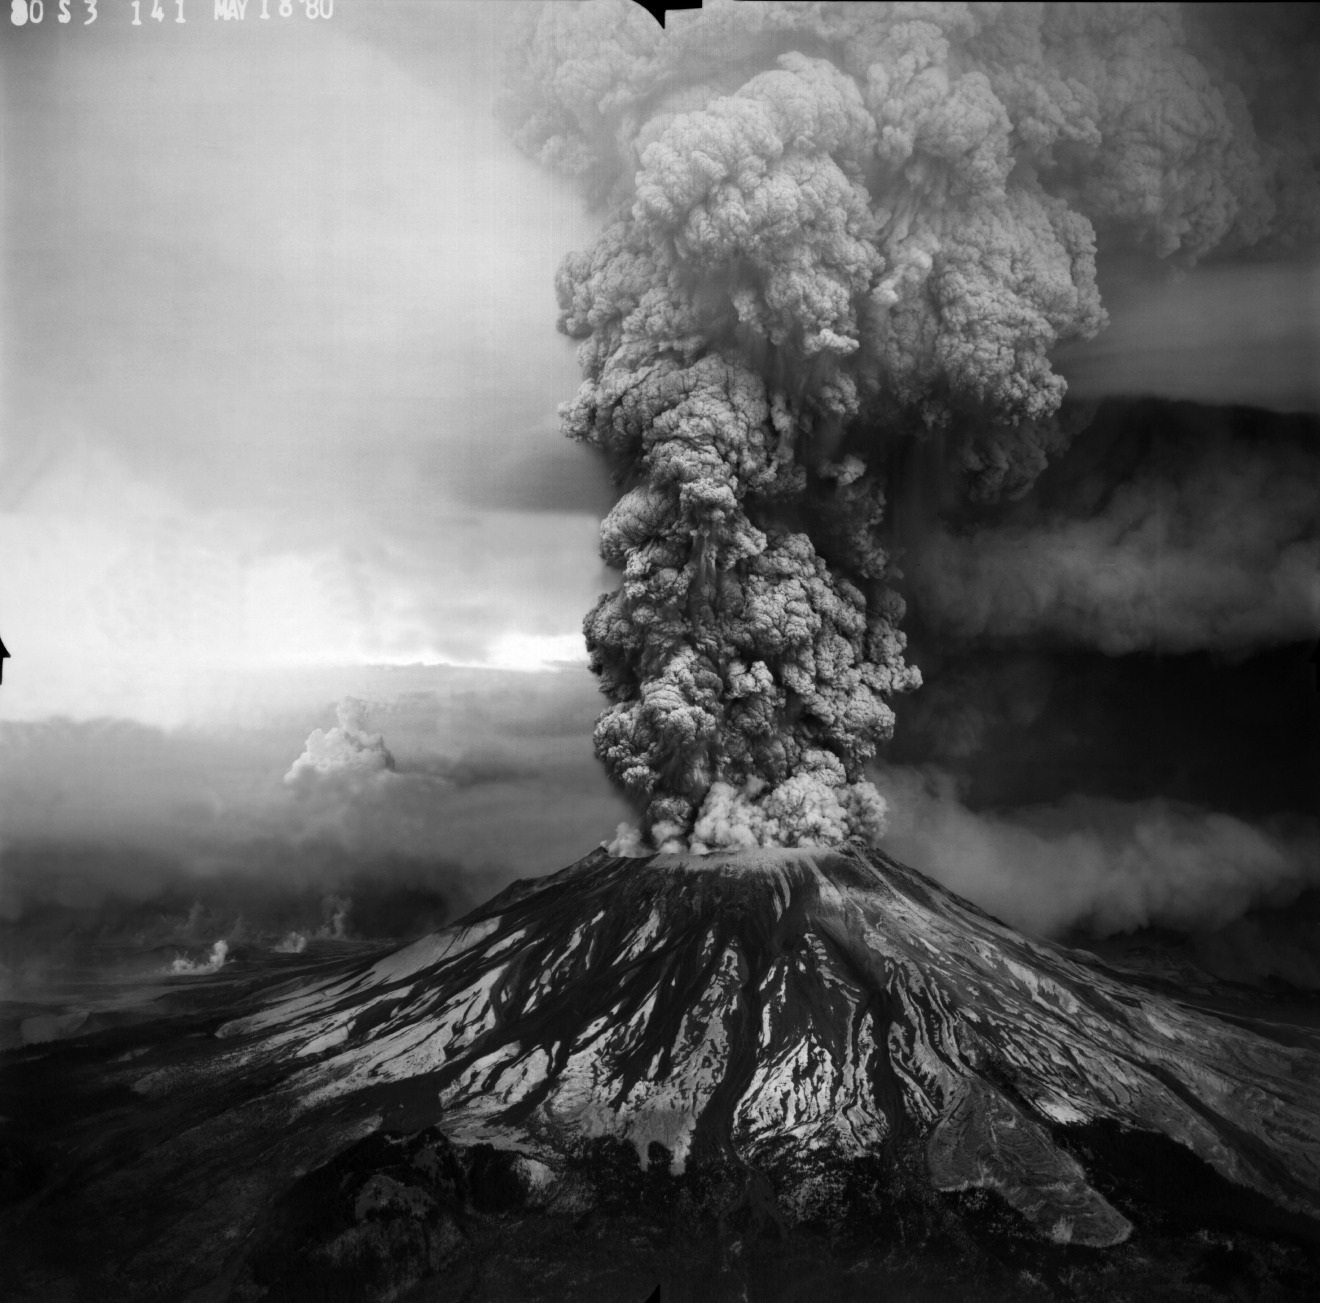 The mountain went from 9,677 to 8,364 feet tall in an instant.All told, 57 people died or disappeared.The smoke plume climbed 60,000 feet in the air. The debris filled 24 square miles of valley. (Robert Krimmel/USGS)